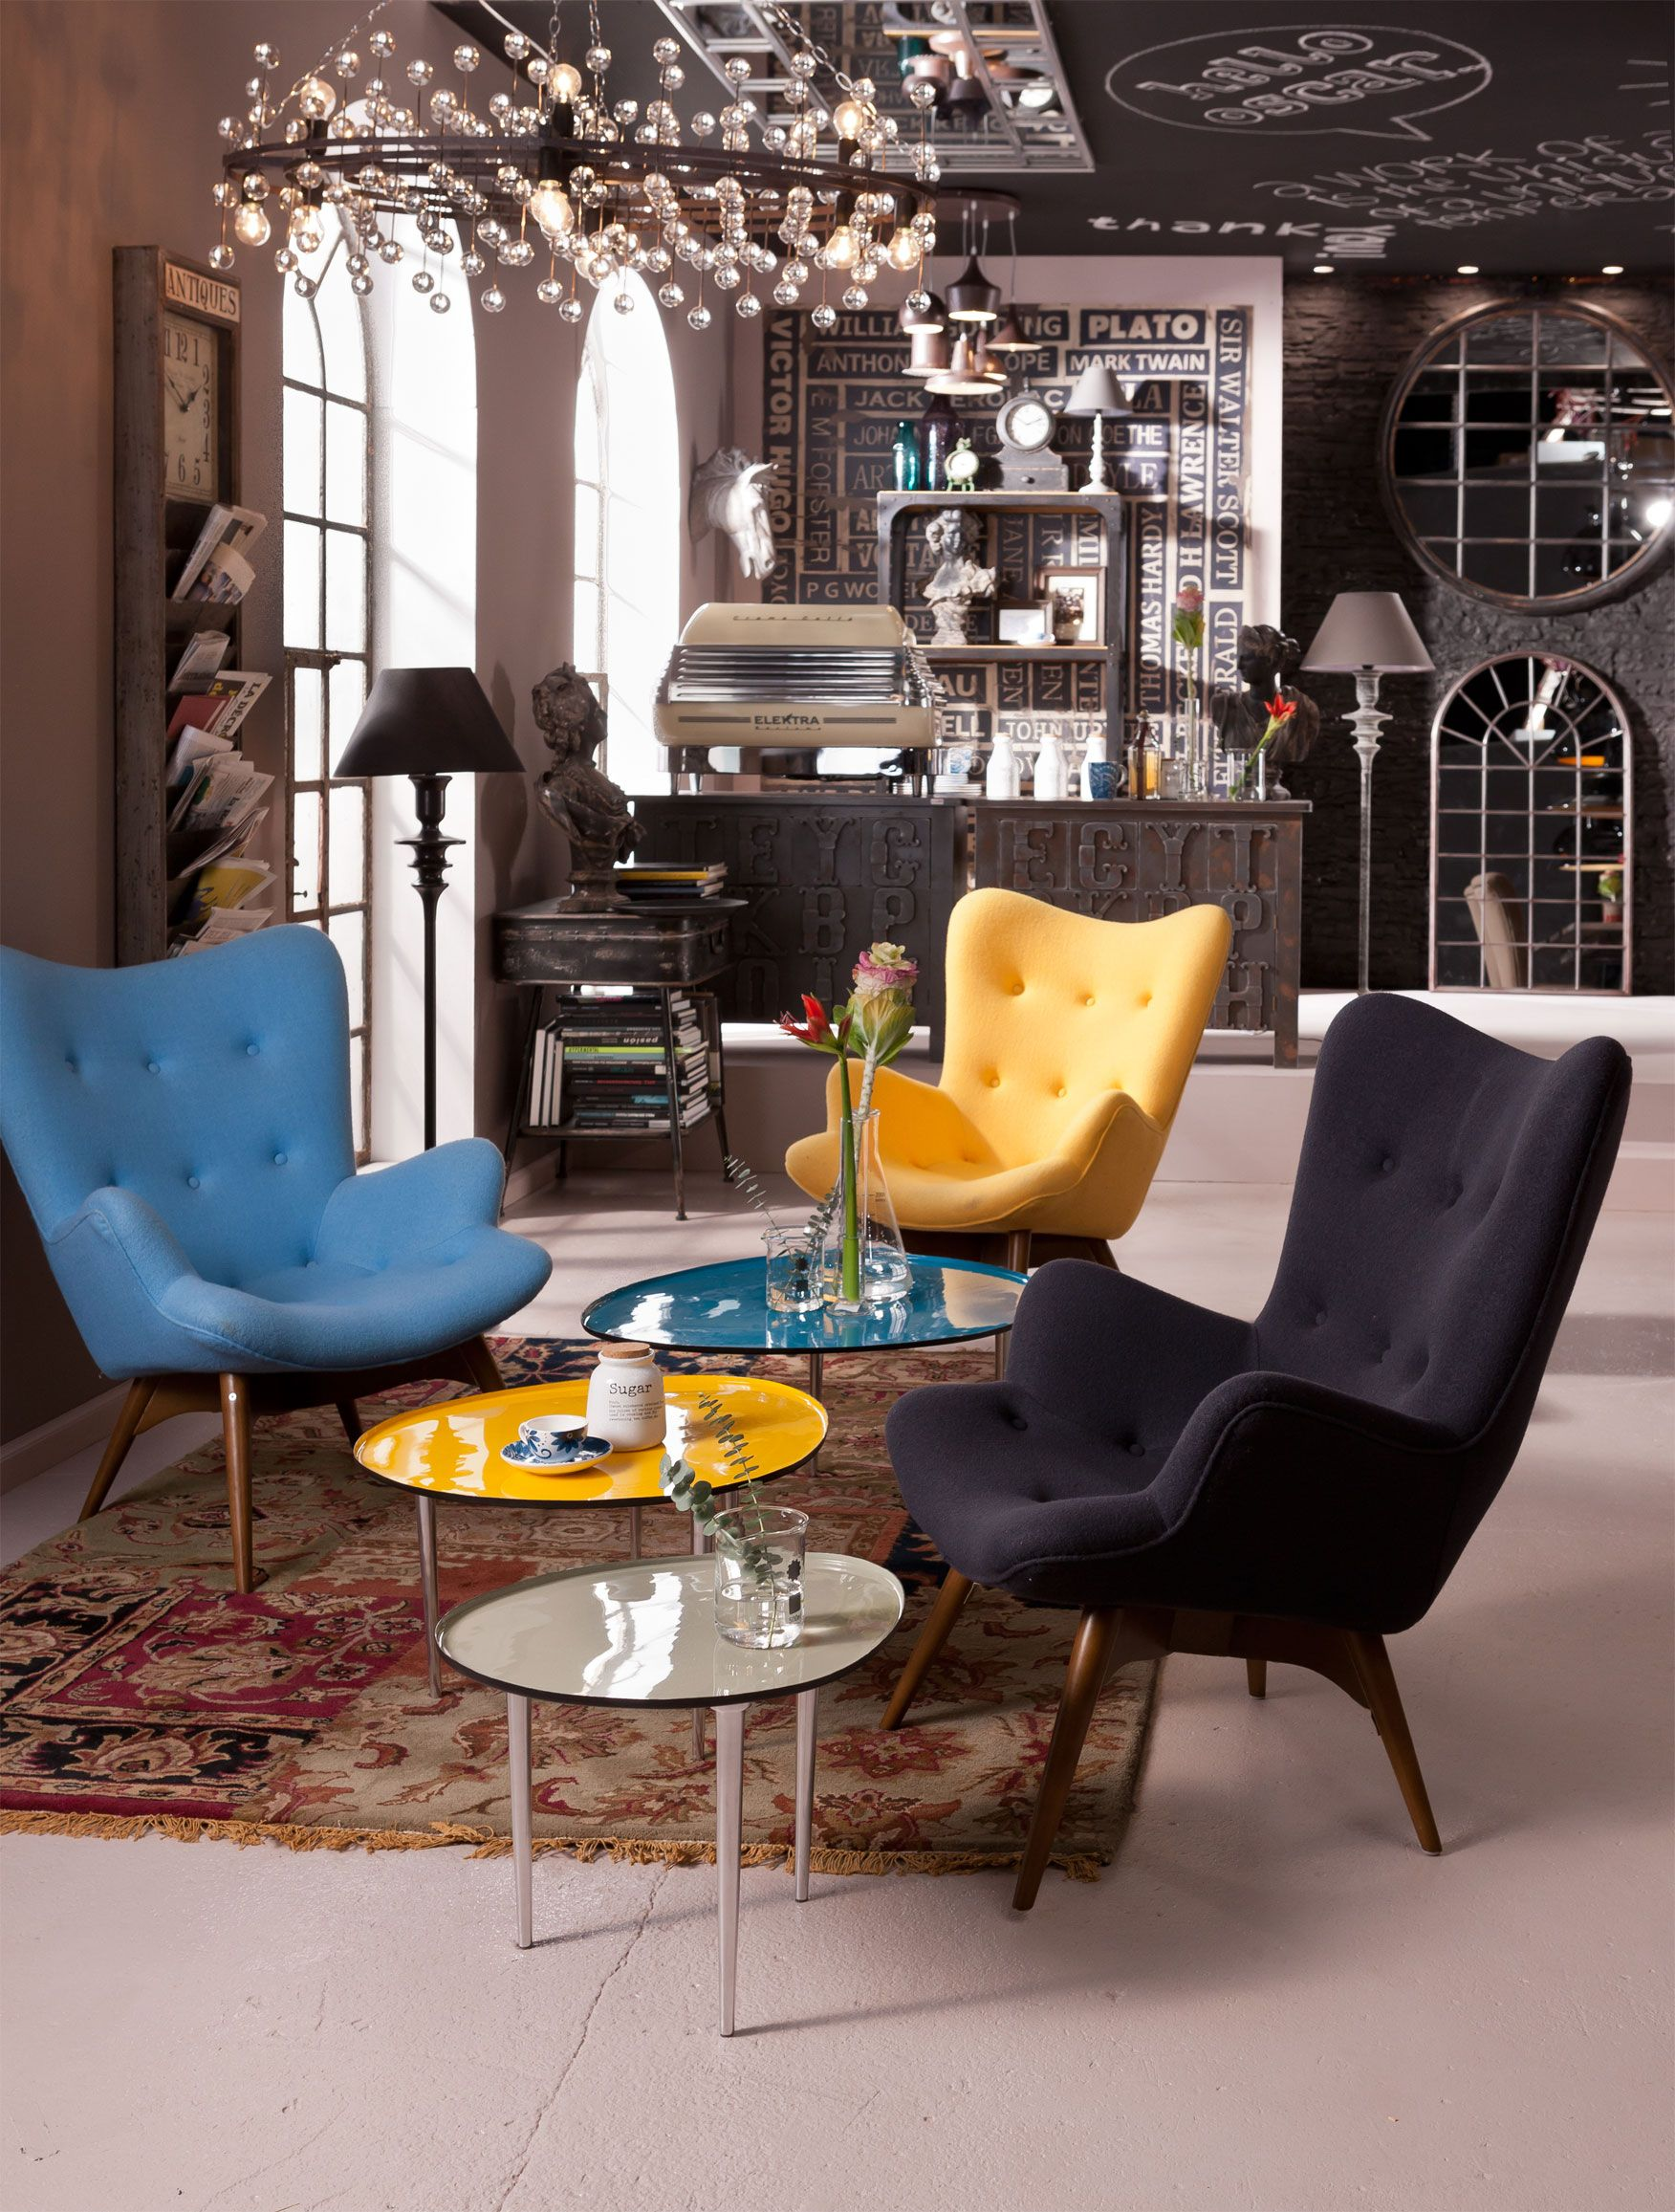 Kare Design Sessel Angels Wings Fauteuil Angels Wings New Geel Blauw En Grijs Zijn 3 Retro